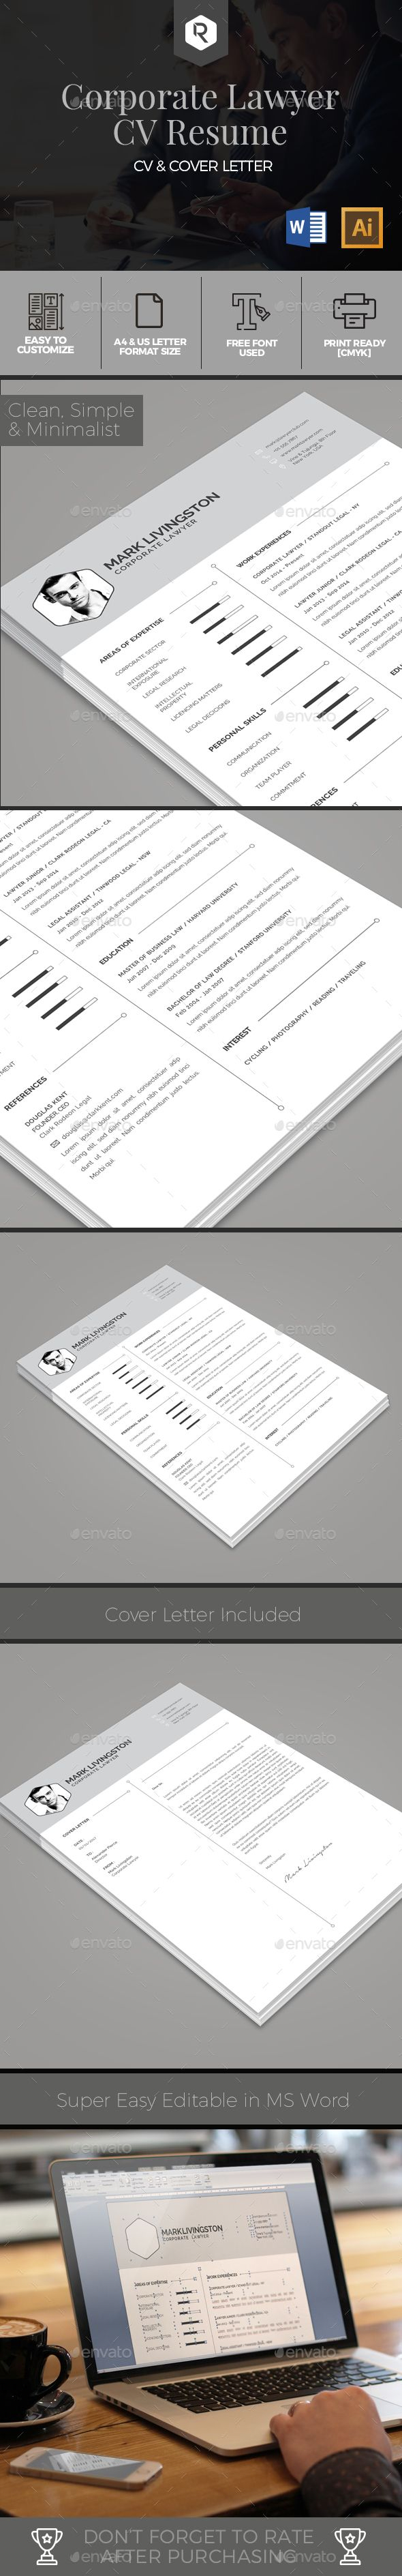 Corporate Lawyer CV Resume Template by RahardiCreative Corporate Lawyer CV Resume TemplateGood day, this is a awesome Resume/CV Template for you who working as Corporate Lawyer! This te